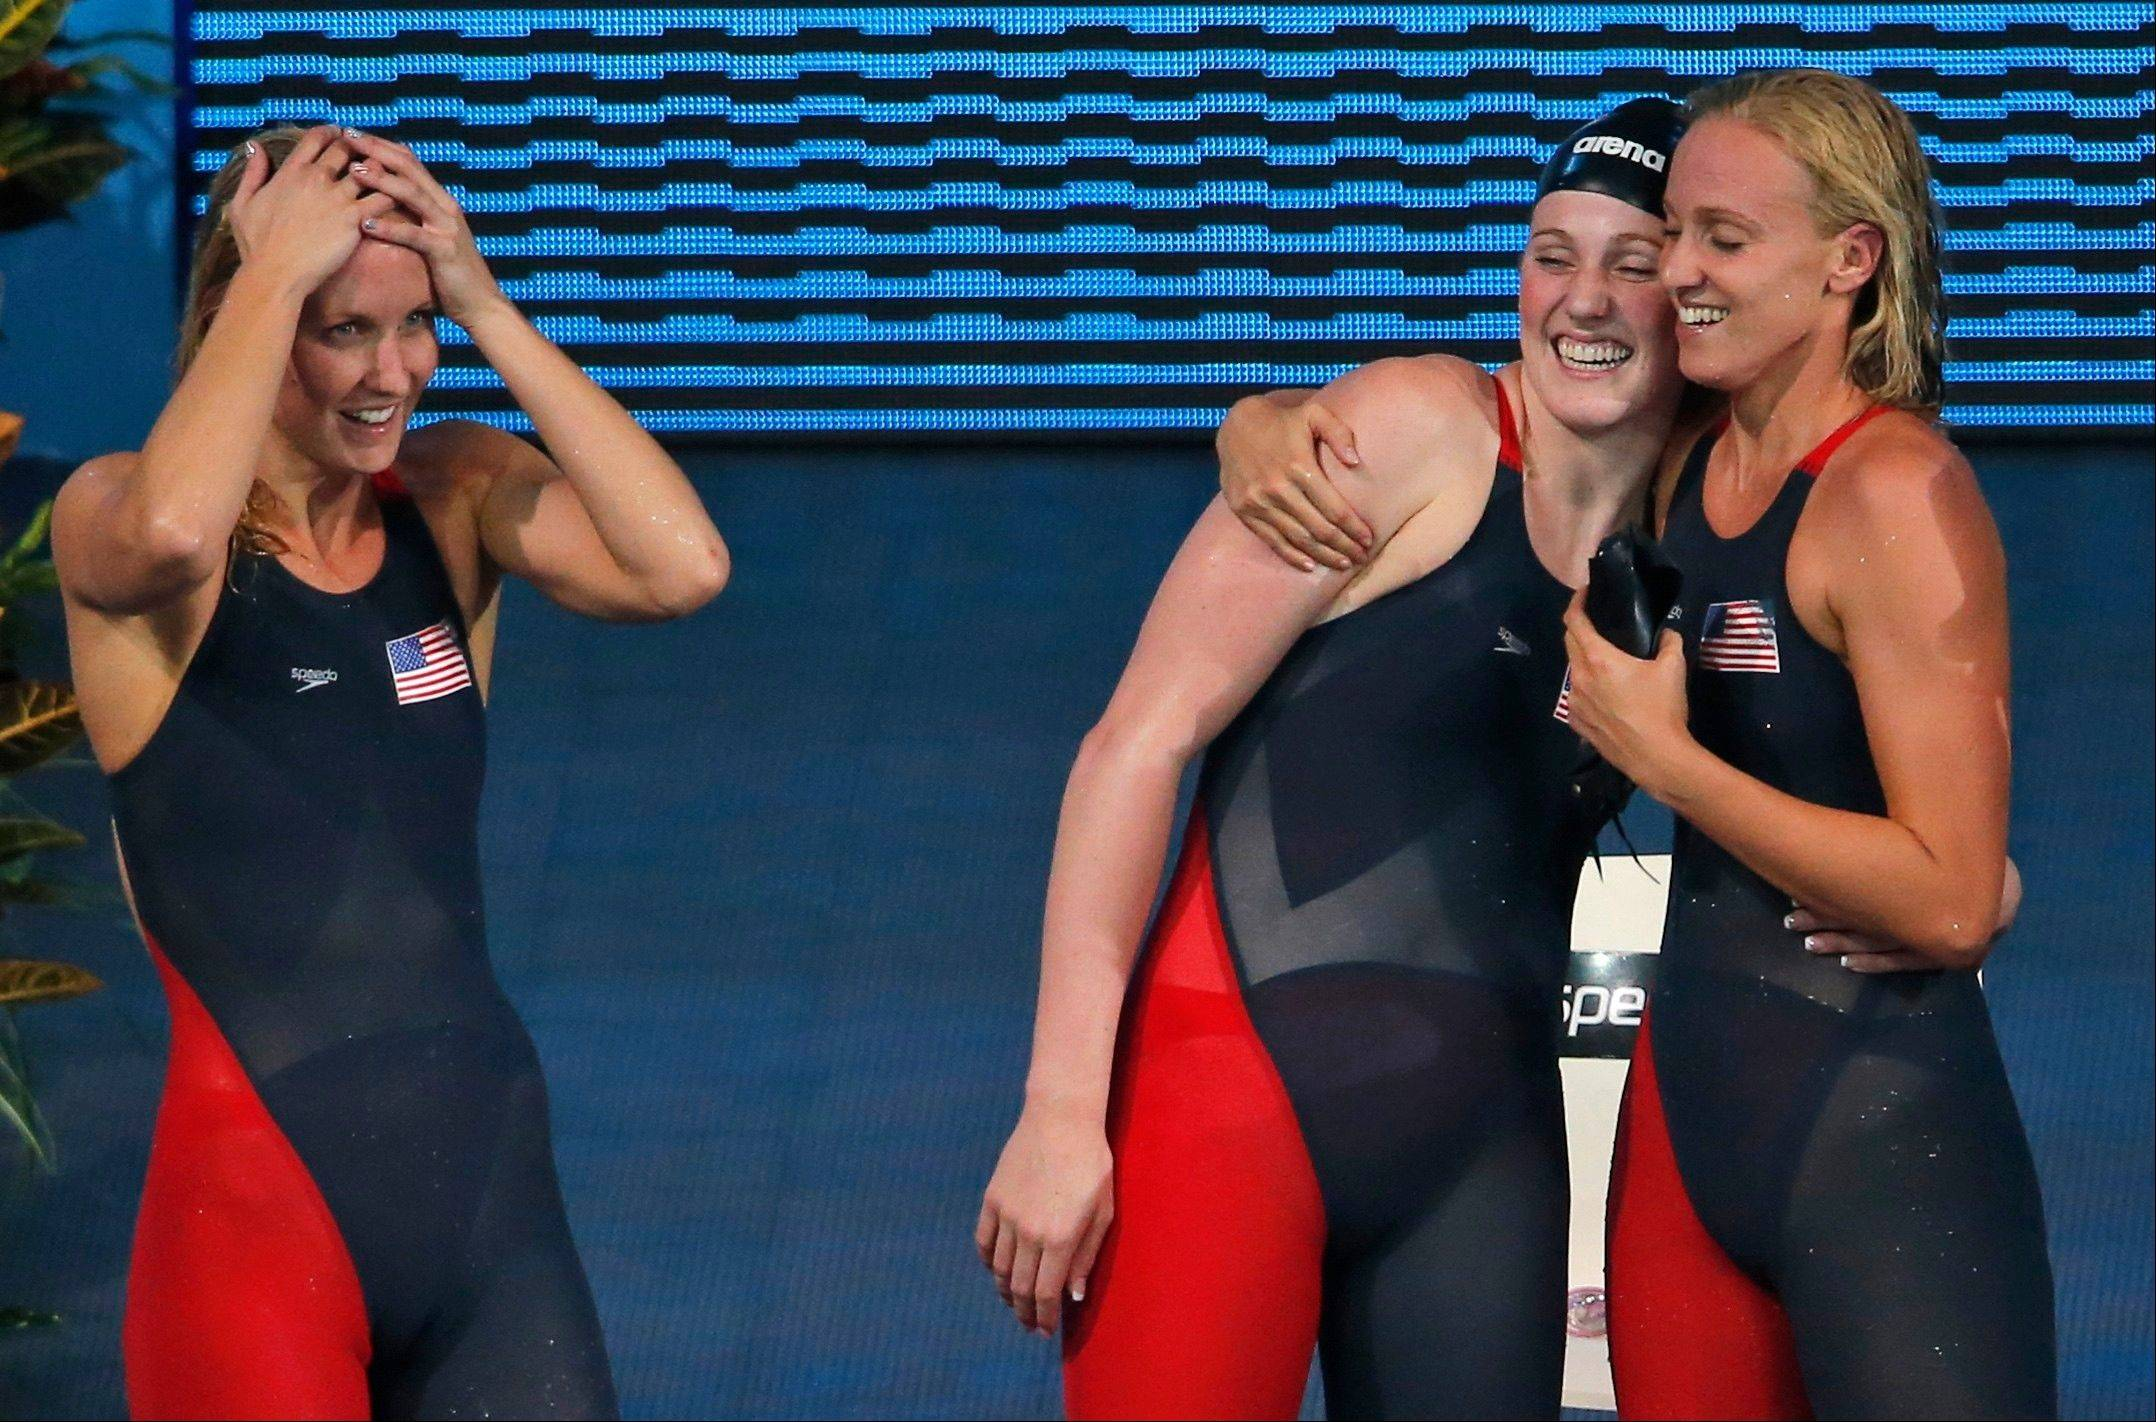 The U.S. women's 4x100 medley relay team, from left, Jessica Hardy, Missy Franklin and Dana Vollmer celebrate after Megan Romano, not in the photo. anchored them to the gold medal Sunday at the FINA Swimming World Championships in Barcelona, Spain.